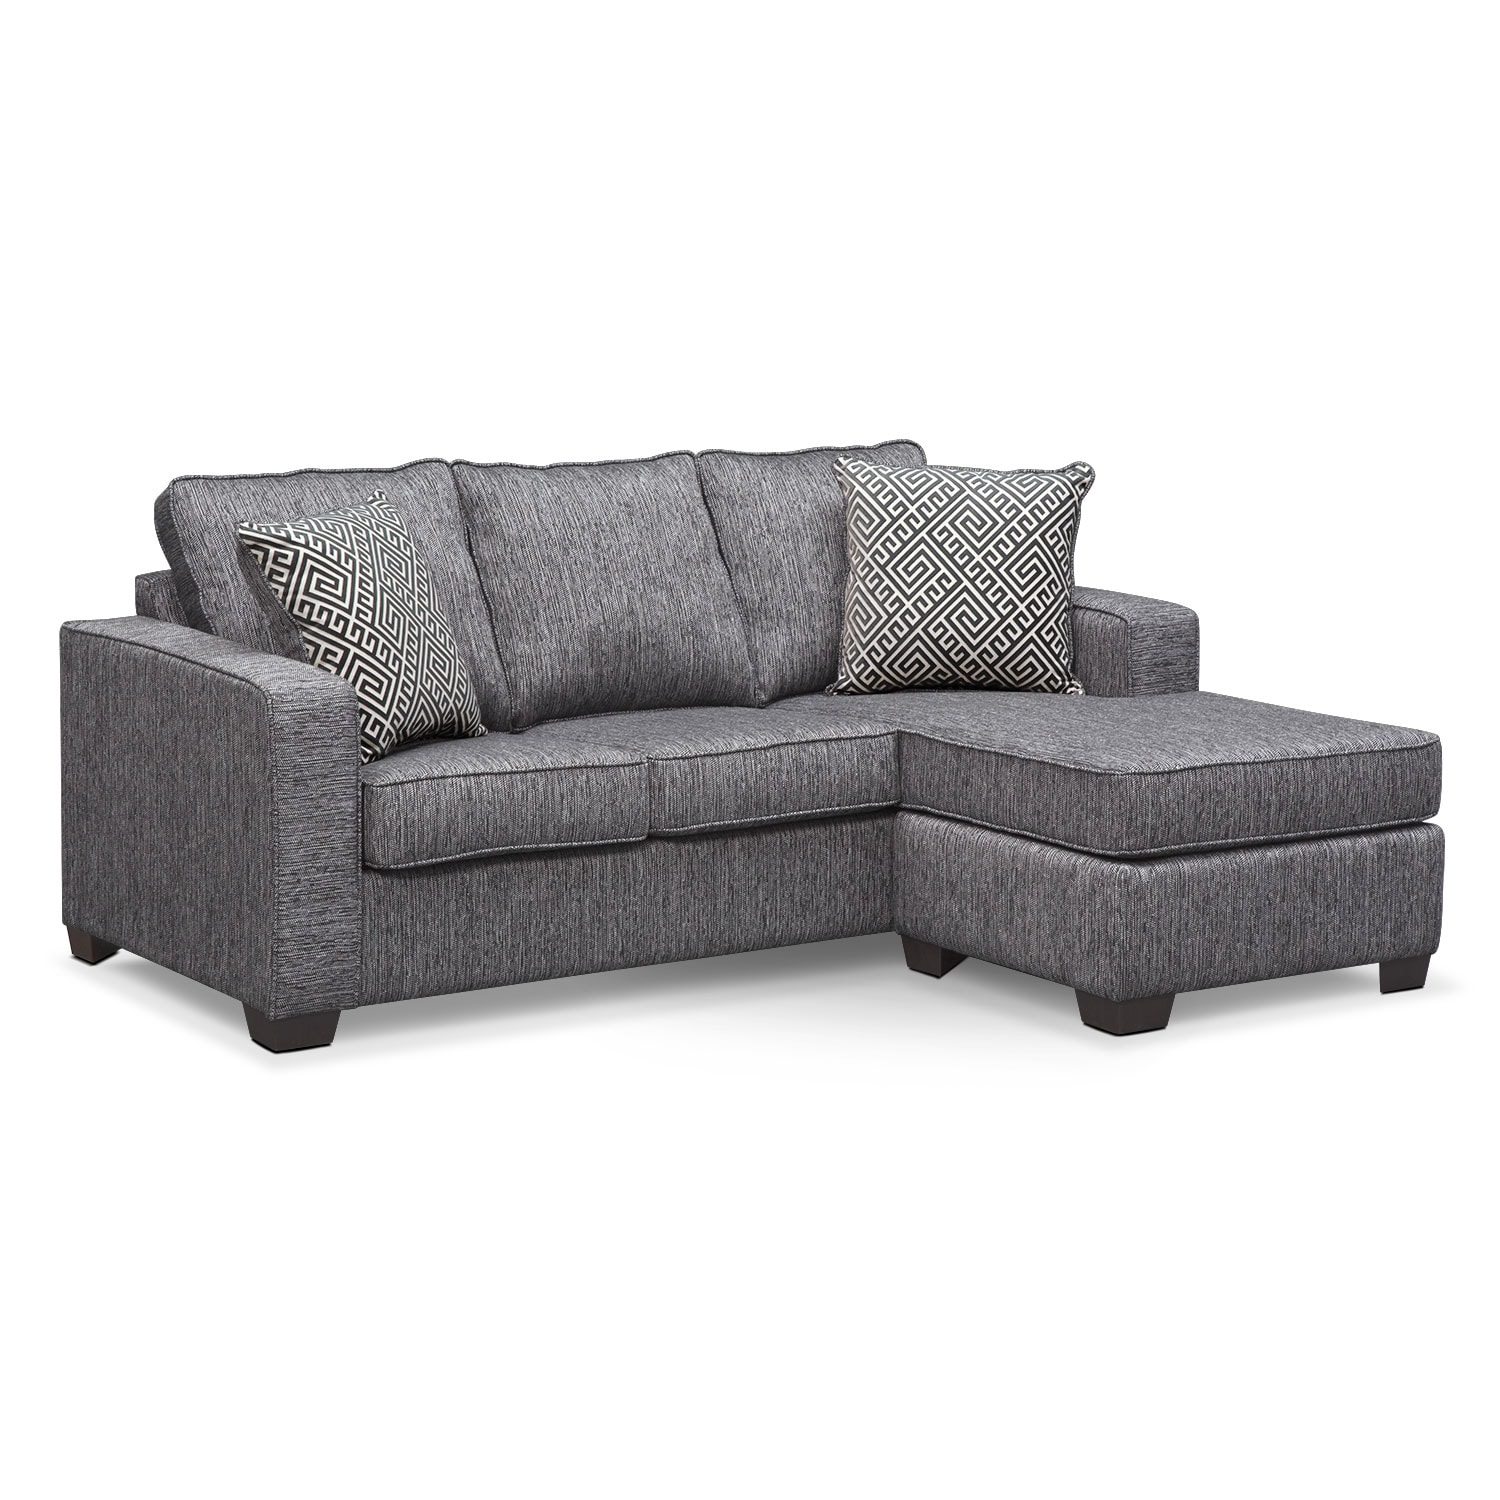 Sterling Innerspring Sleeper Sofa With Chaise - Charcoal By Factory Outlet